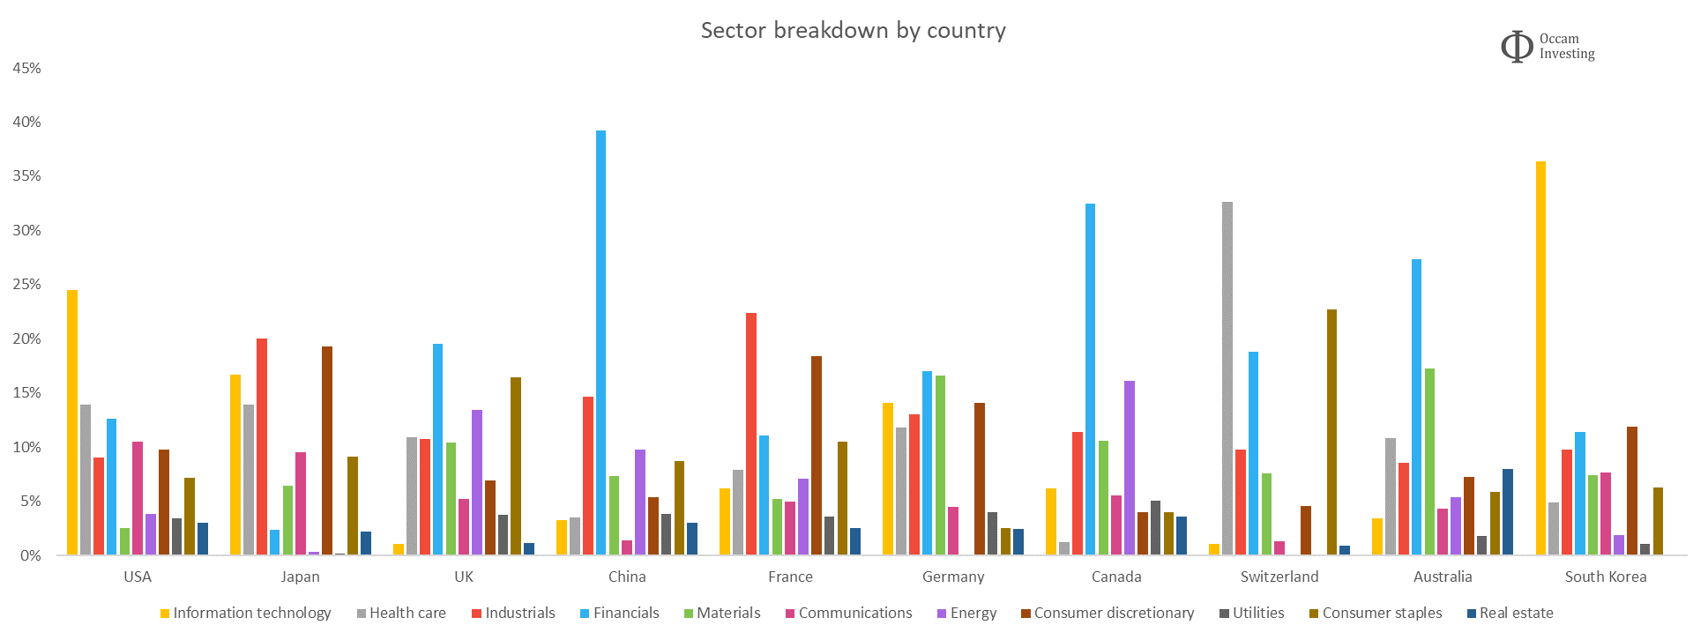 Sector breakdown by country